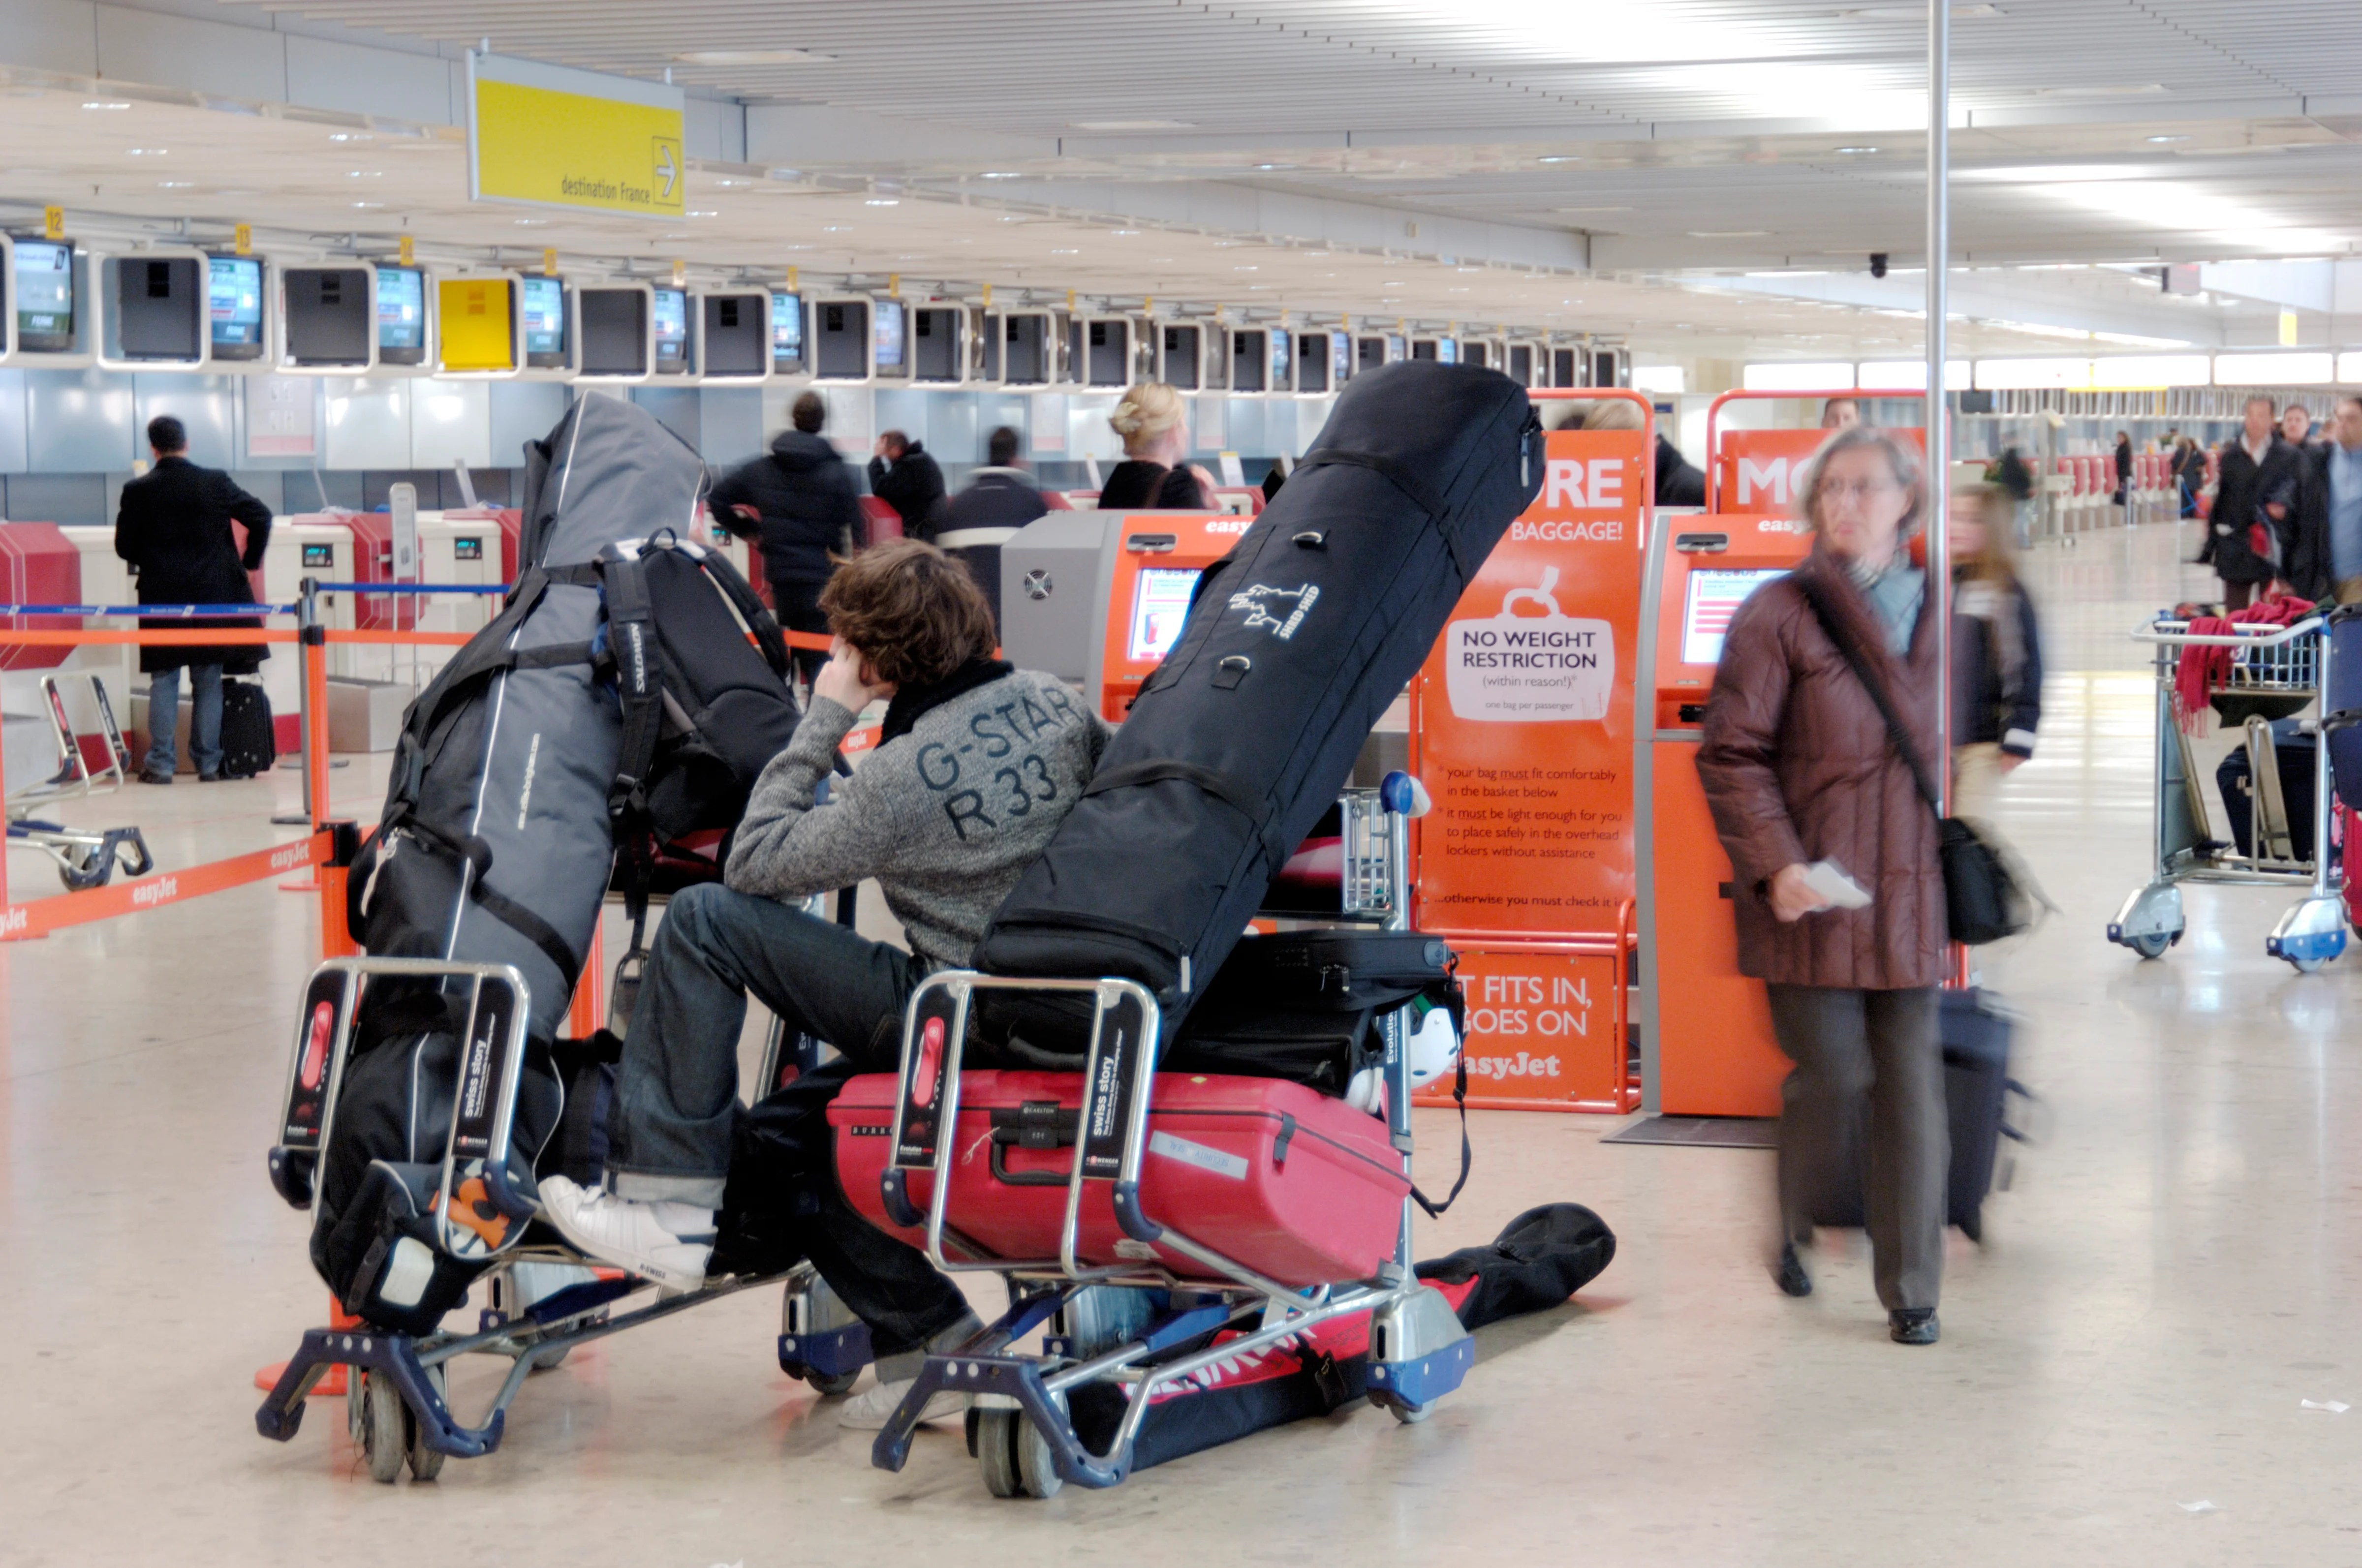 AA Slashes Oversized-Bag Fees By 80% for Some Sports Equipment, Music Gear